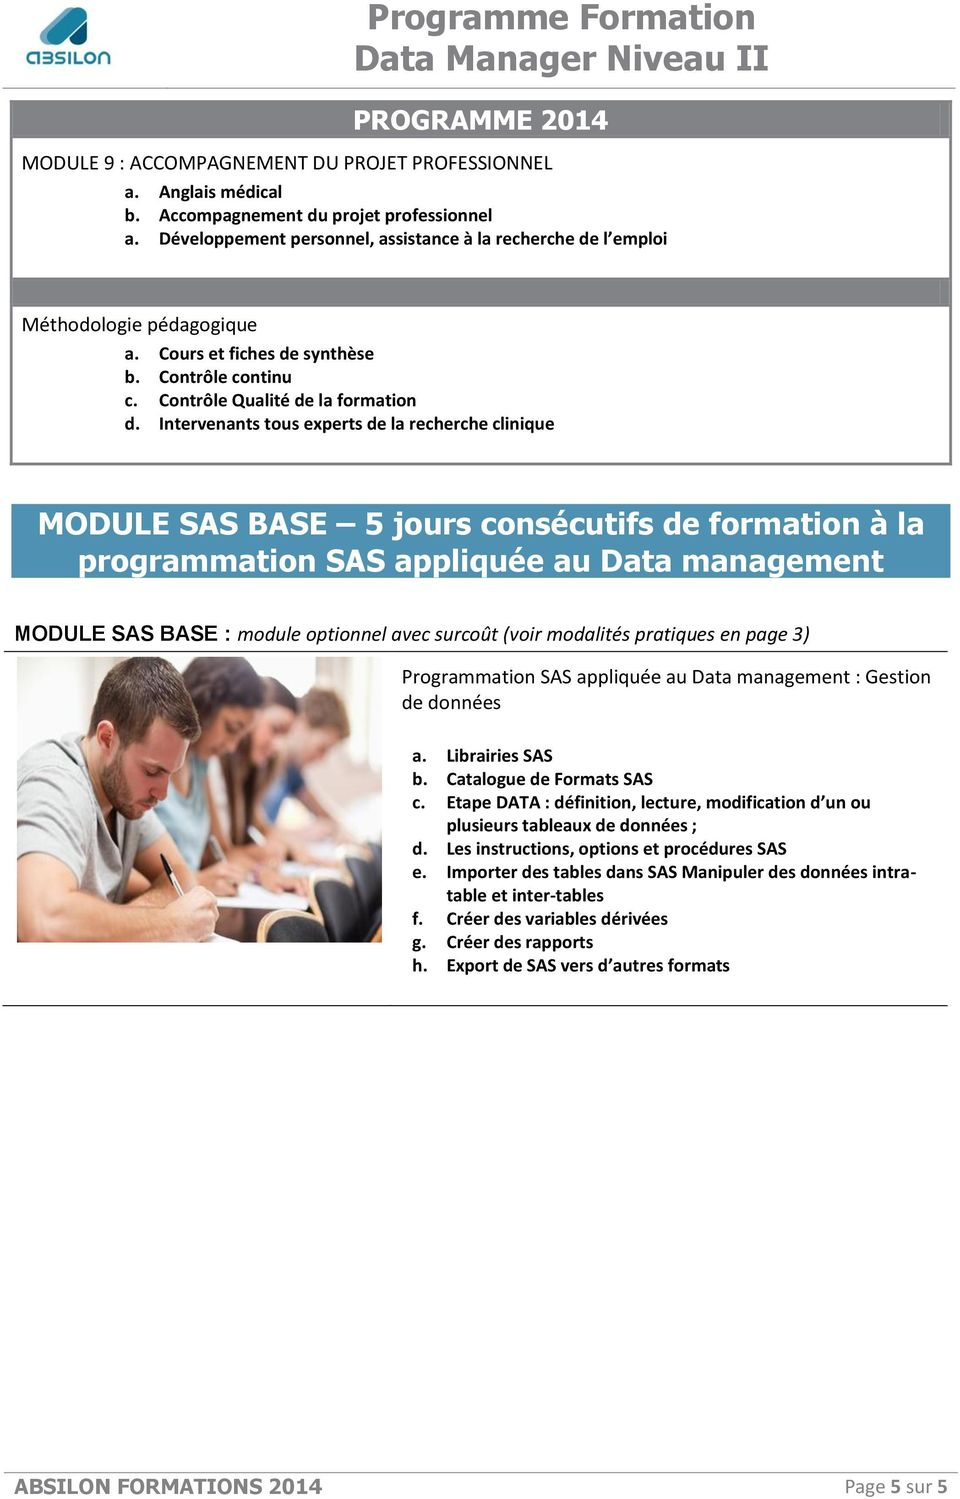 Intervenants tous experts de la recherche clinique MODULE SAS BASE 5 jours consécutifs de formation à la programmation SAS appliquée au Data management MODULE SAS BASE : module optionnel avec surcoût